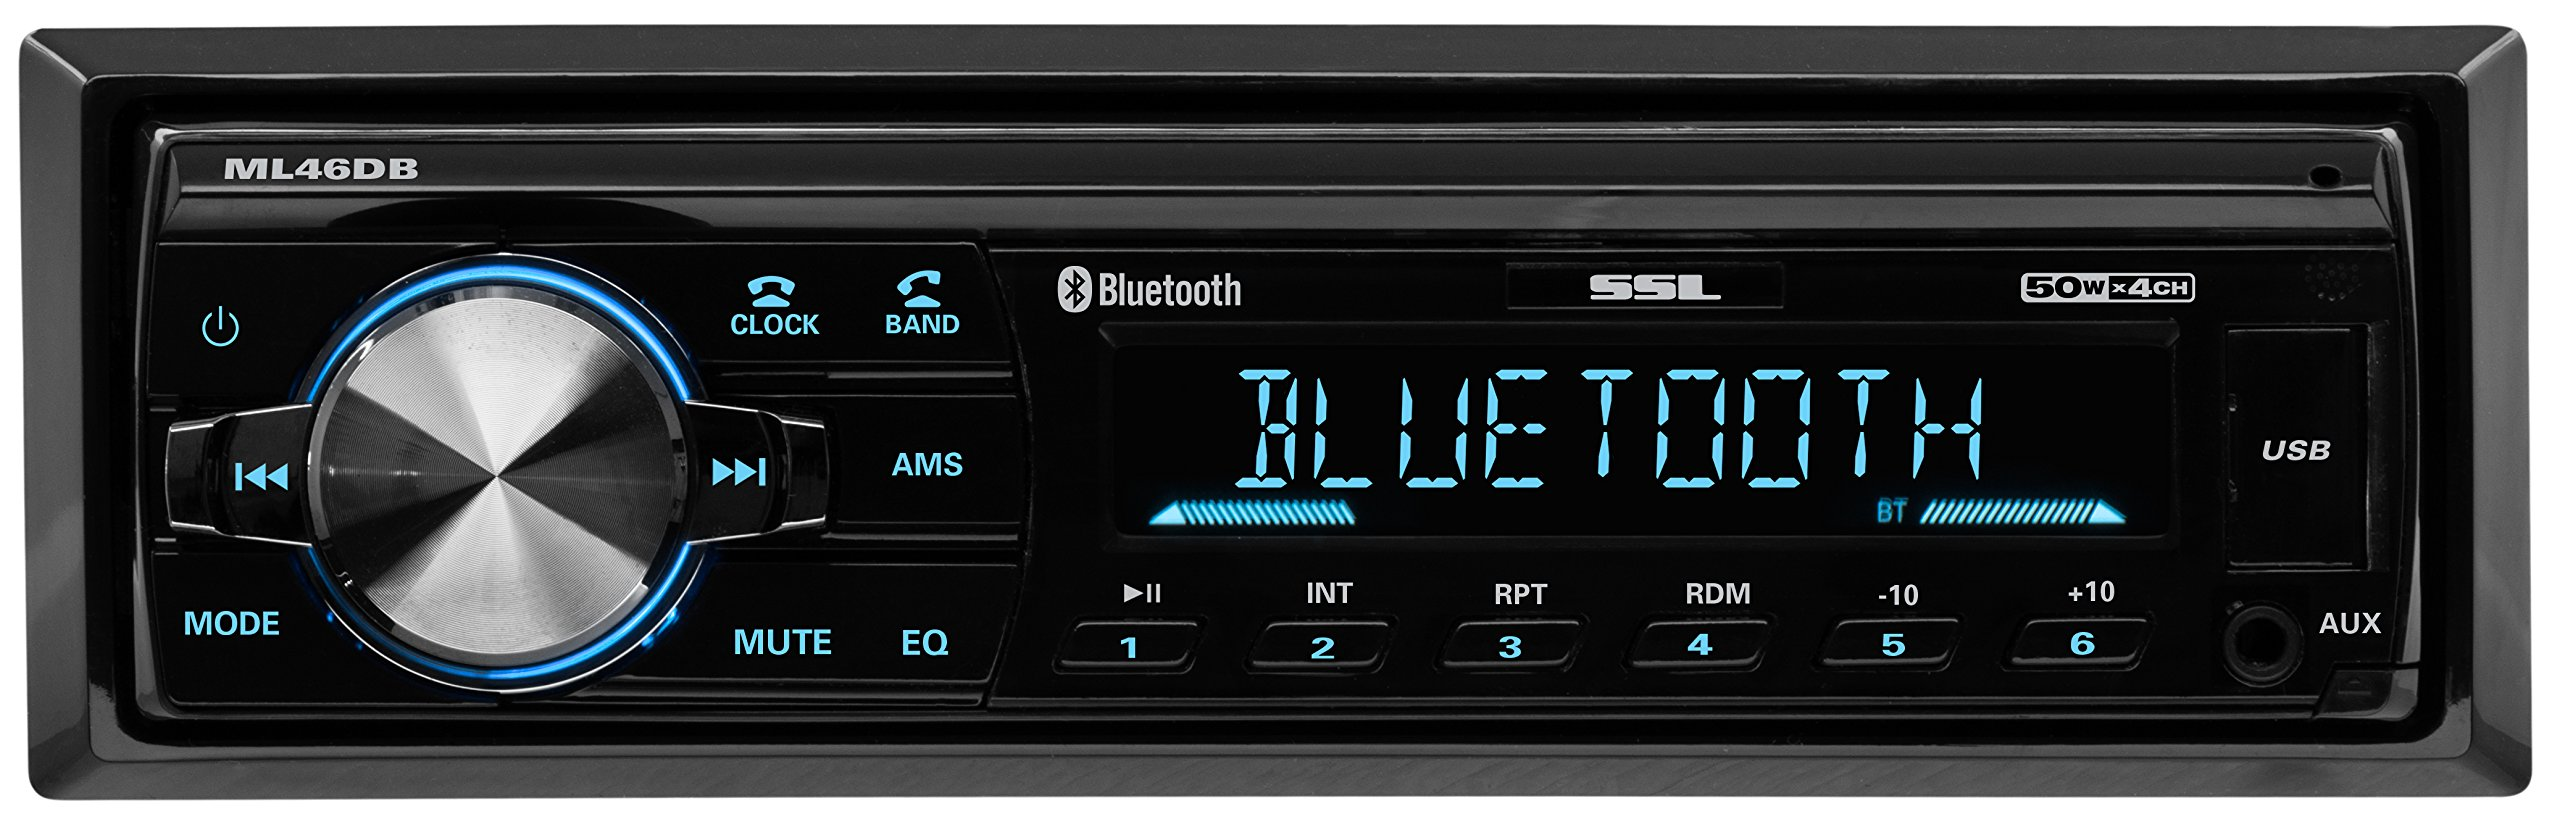 Sound Storm ML46DB Car Receiver - Bluetooth/MP3/USB, FM Radio ONLY (No AM), (No CD/DVD) by Sound Storm Laboratories (Image #1)